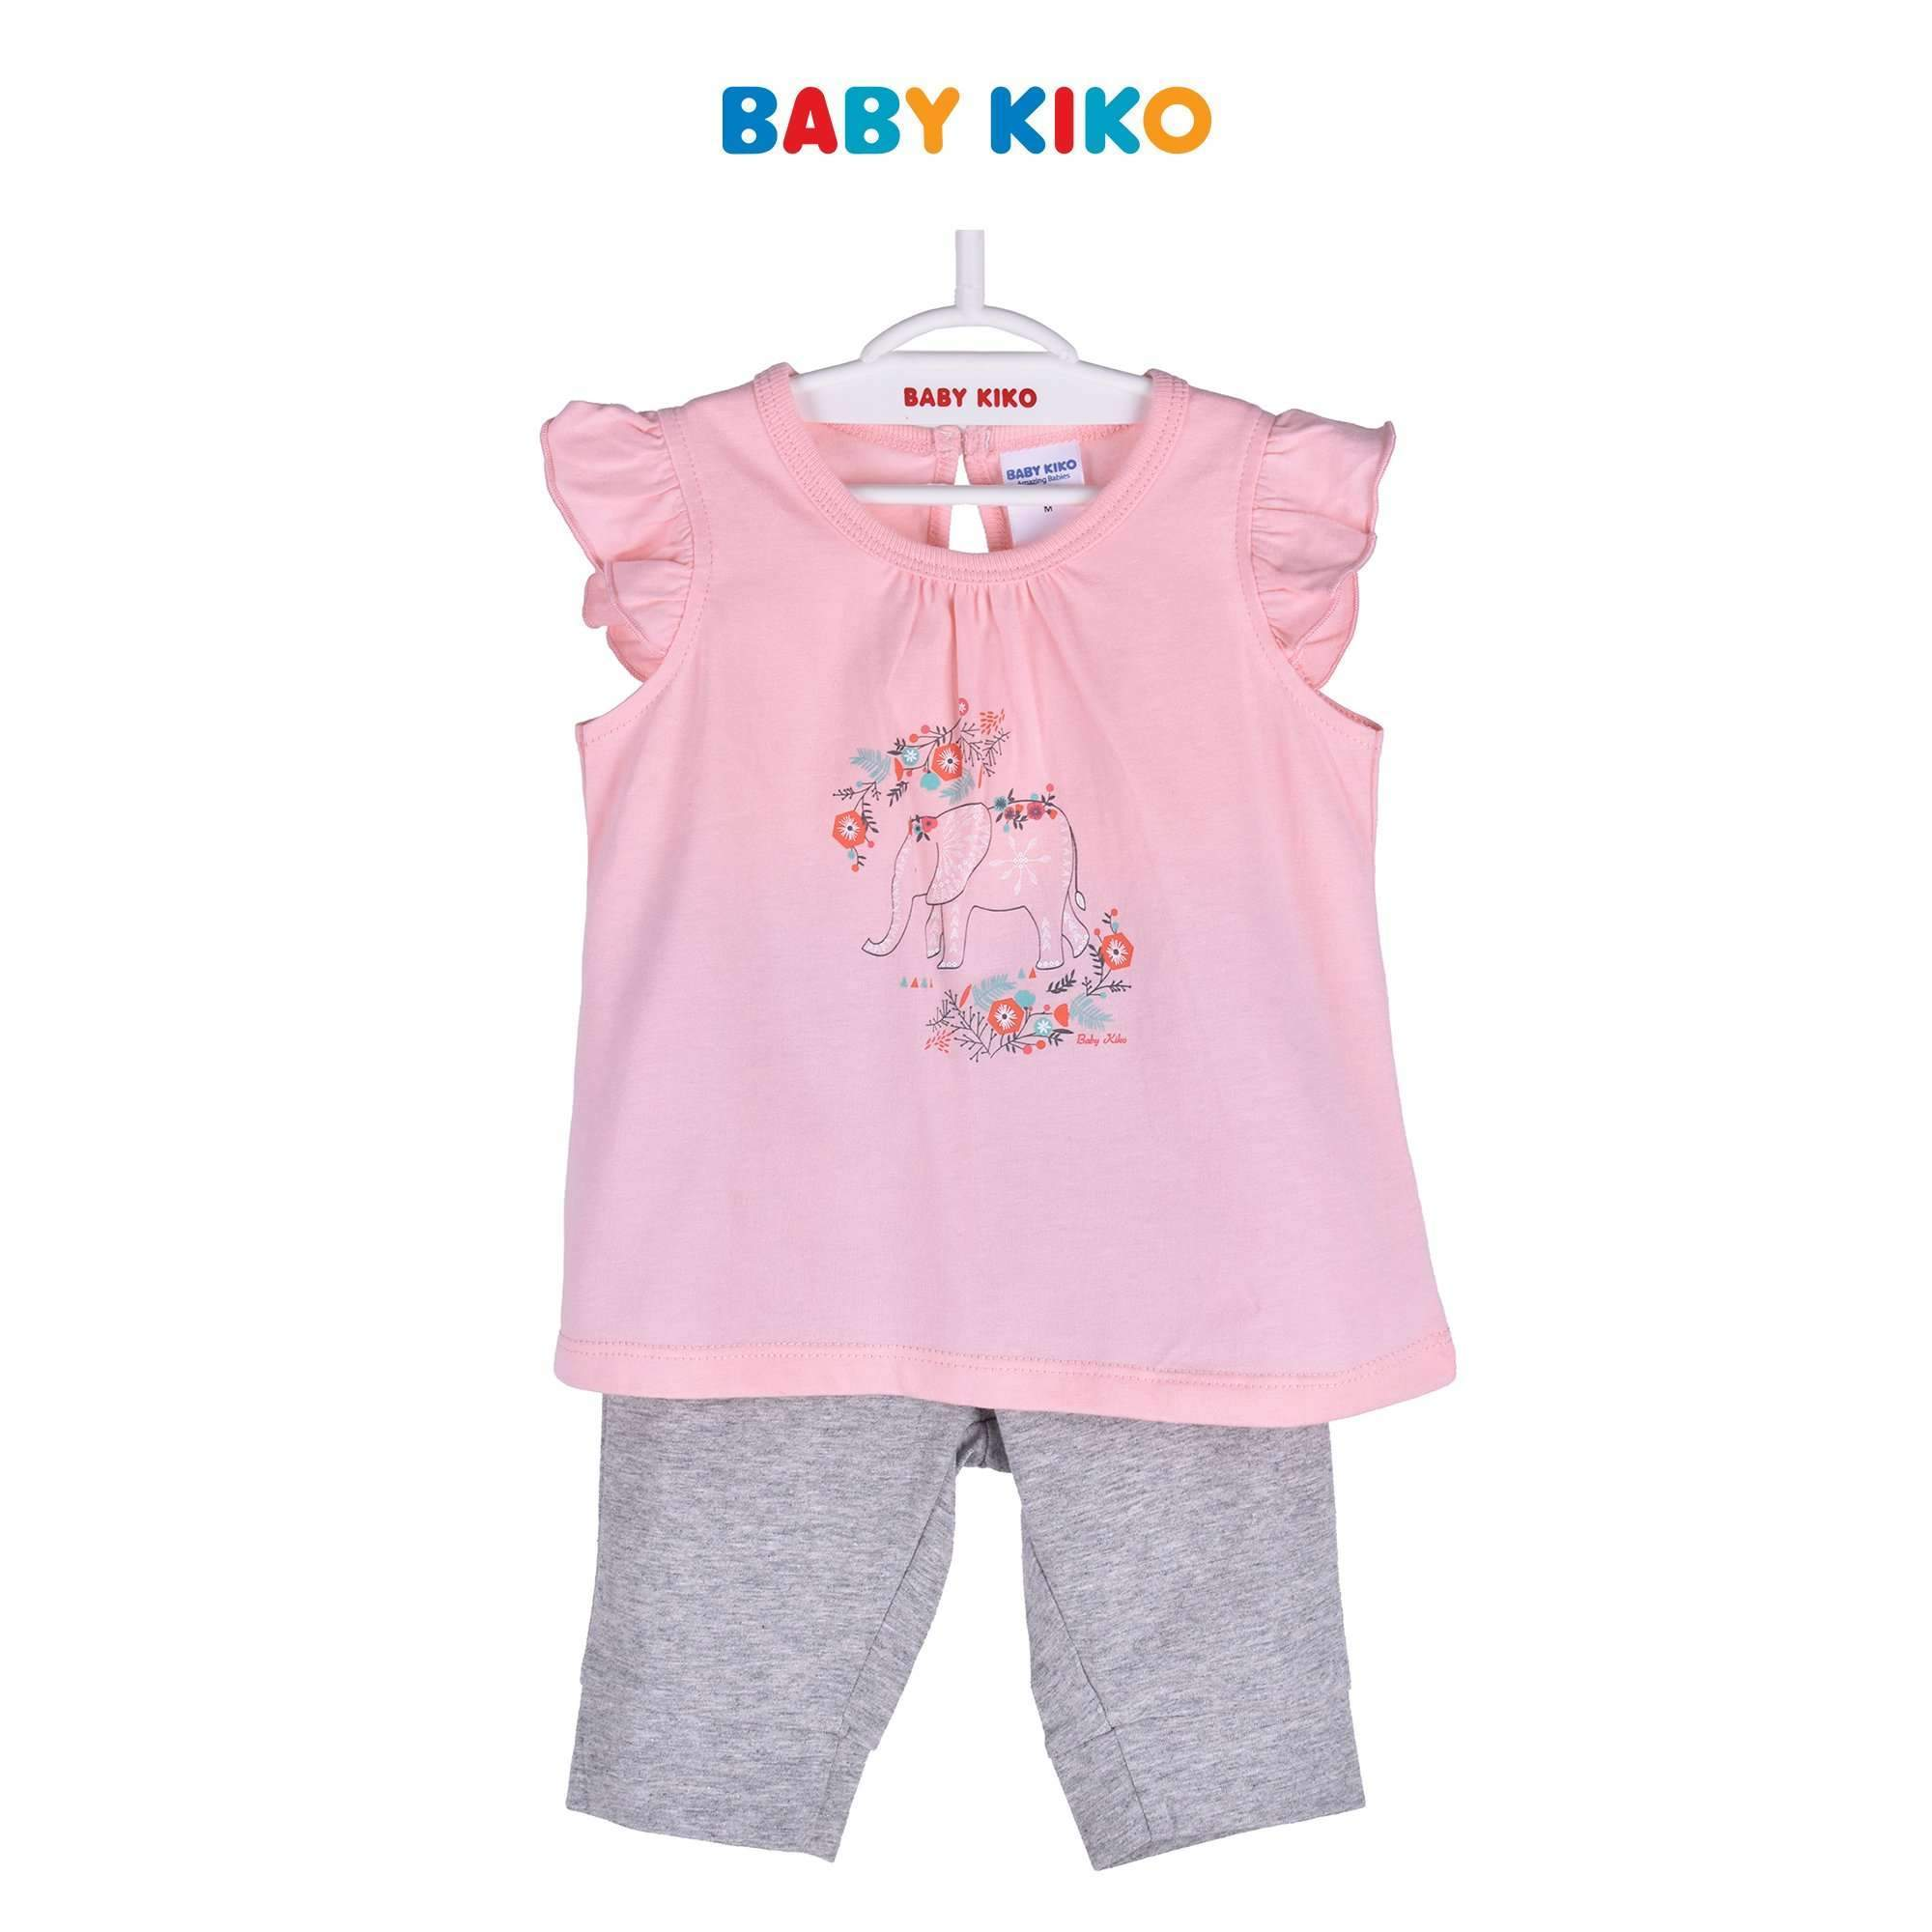 Baby KIKO Toddler Girl Sleeveless Legging Suit - Pink 325109-402 : Buy Baby KIKO online at CMG.MY